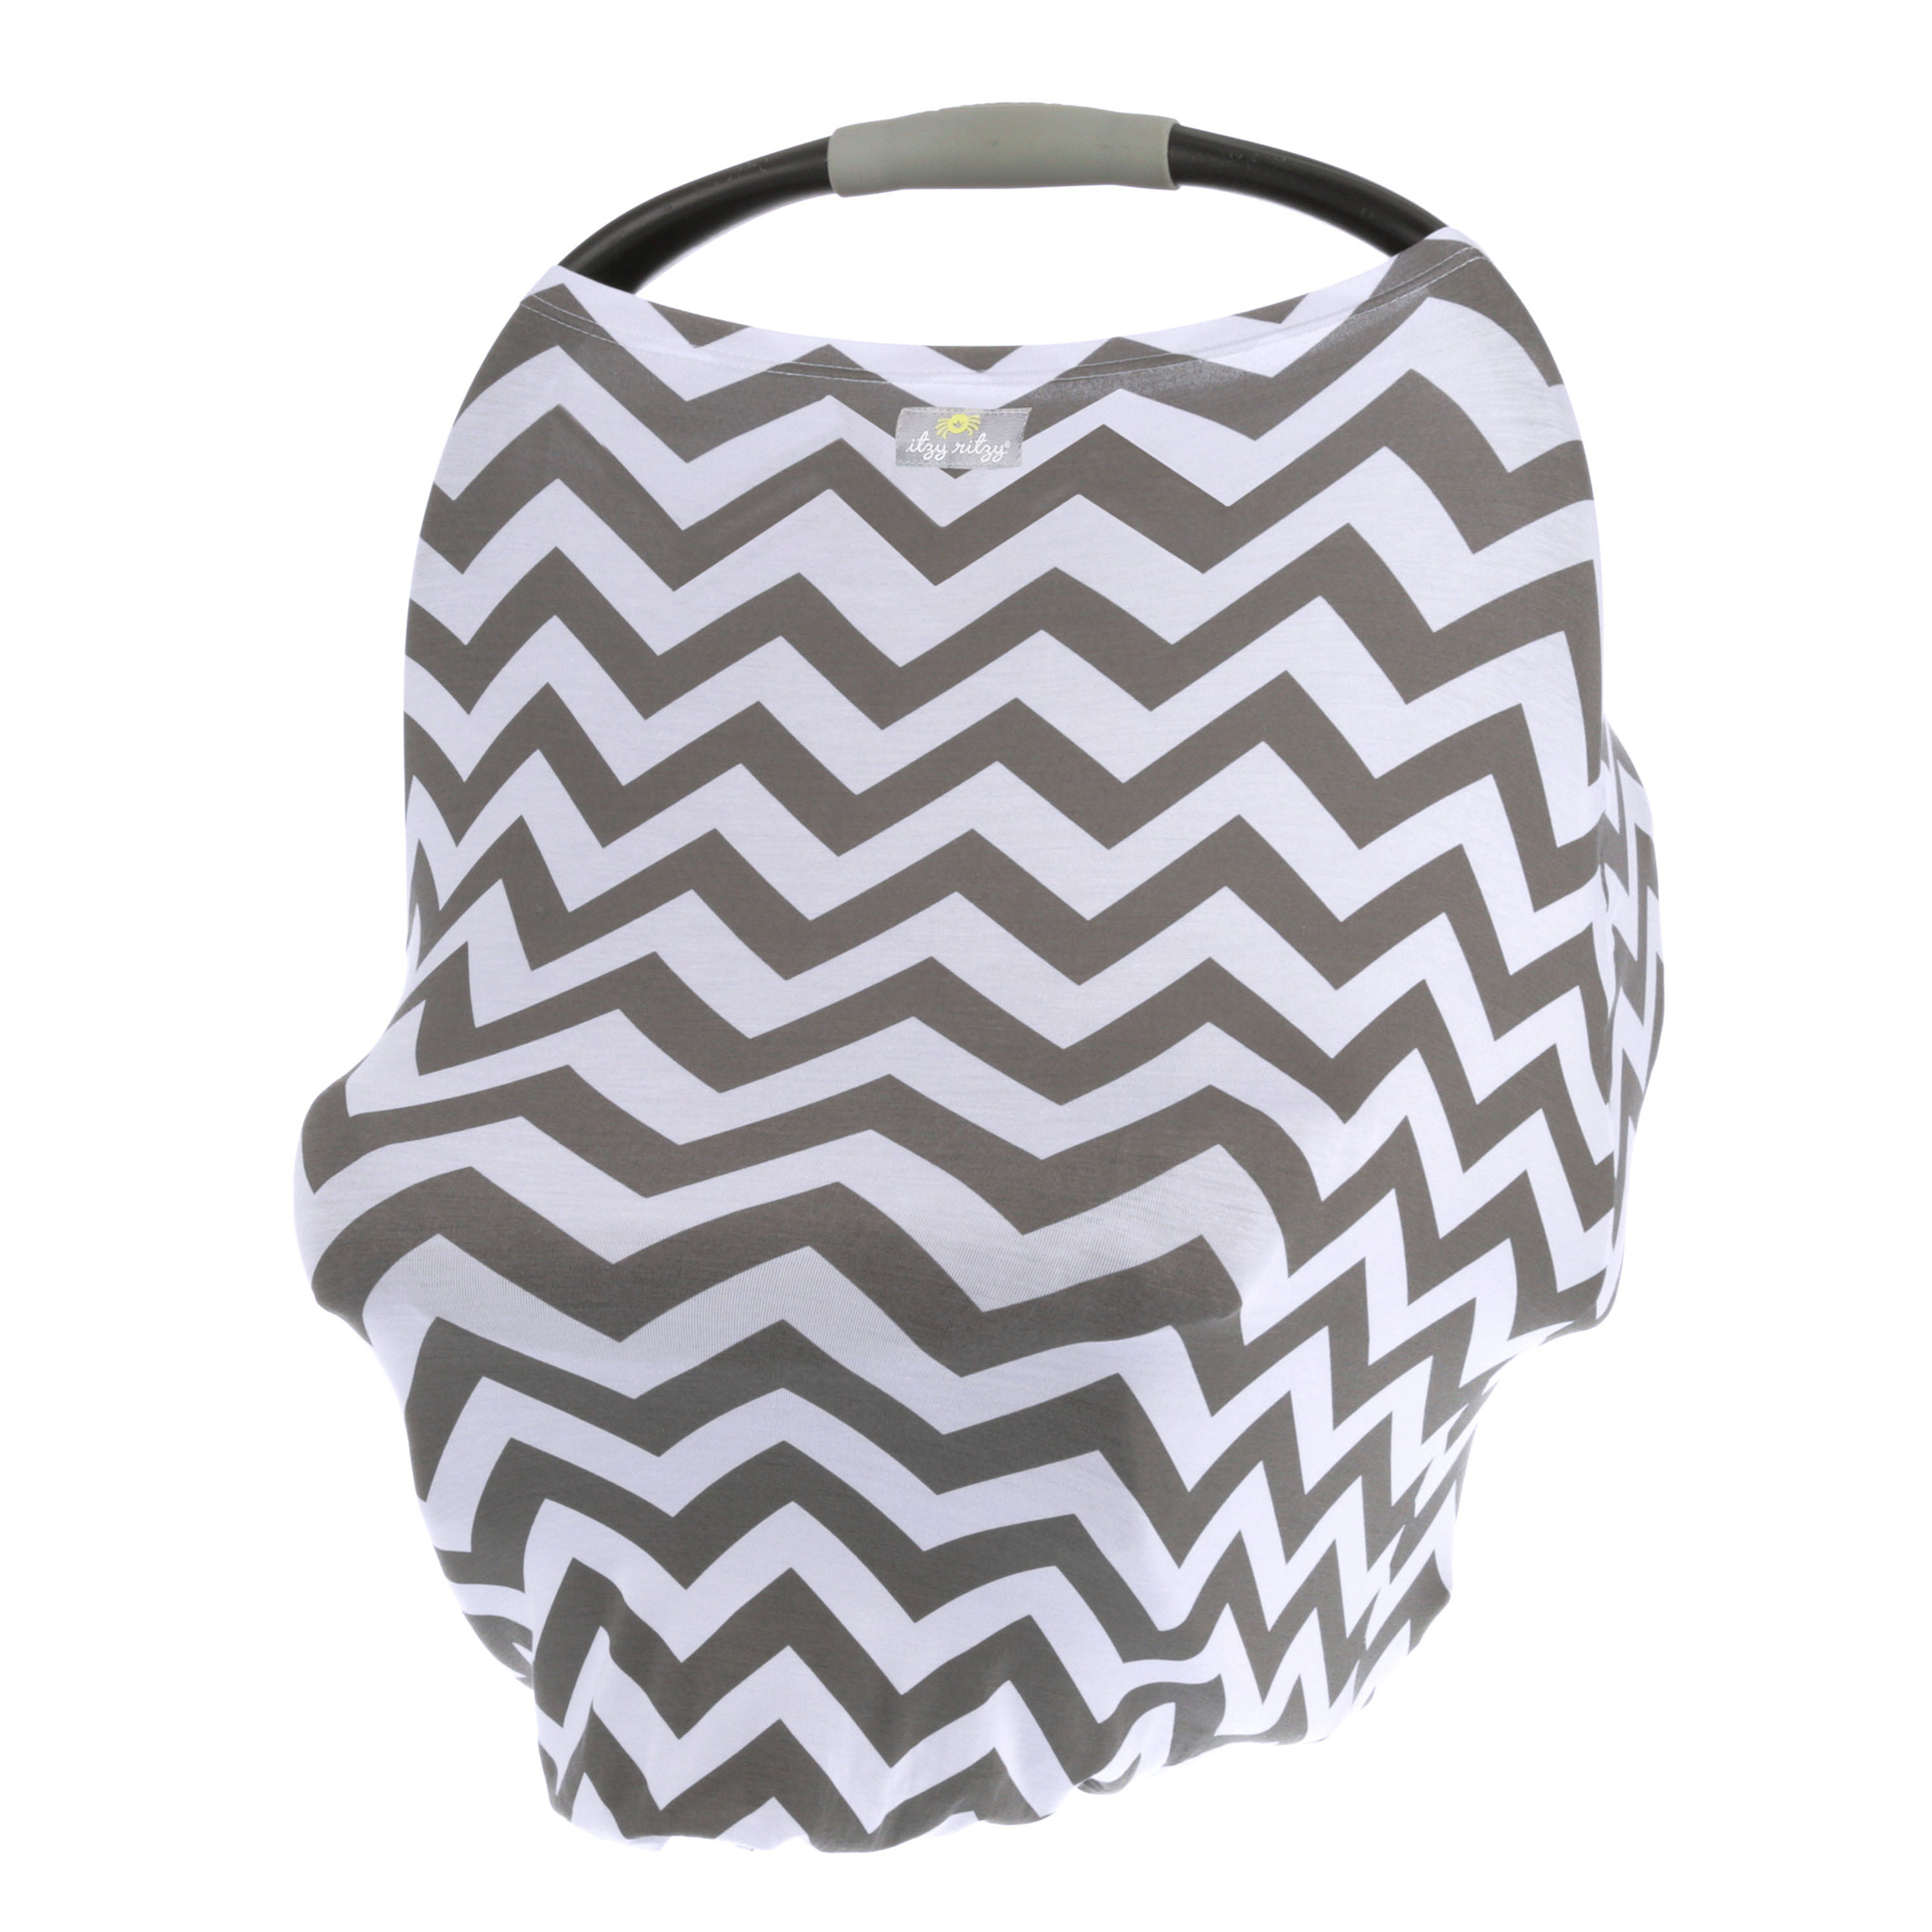 Itzy Ritzy Mom Boss 4 In 1 Multi Use Nursing Cover Car Seat Cover Shopping Cart Cover And Infinity Scarf Gray Chevron Walmart Com Walmart Com